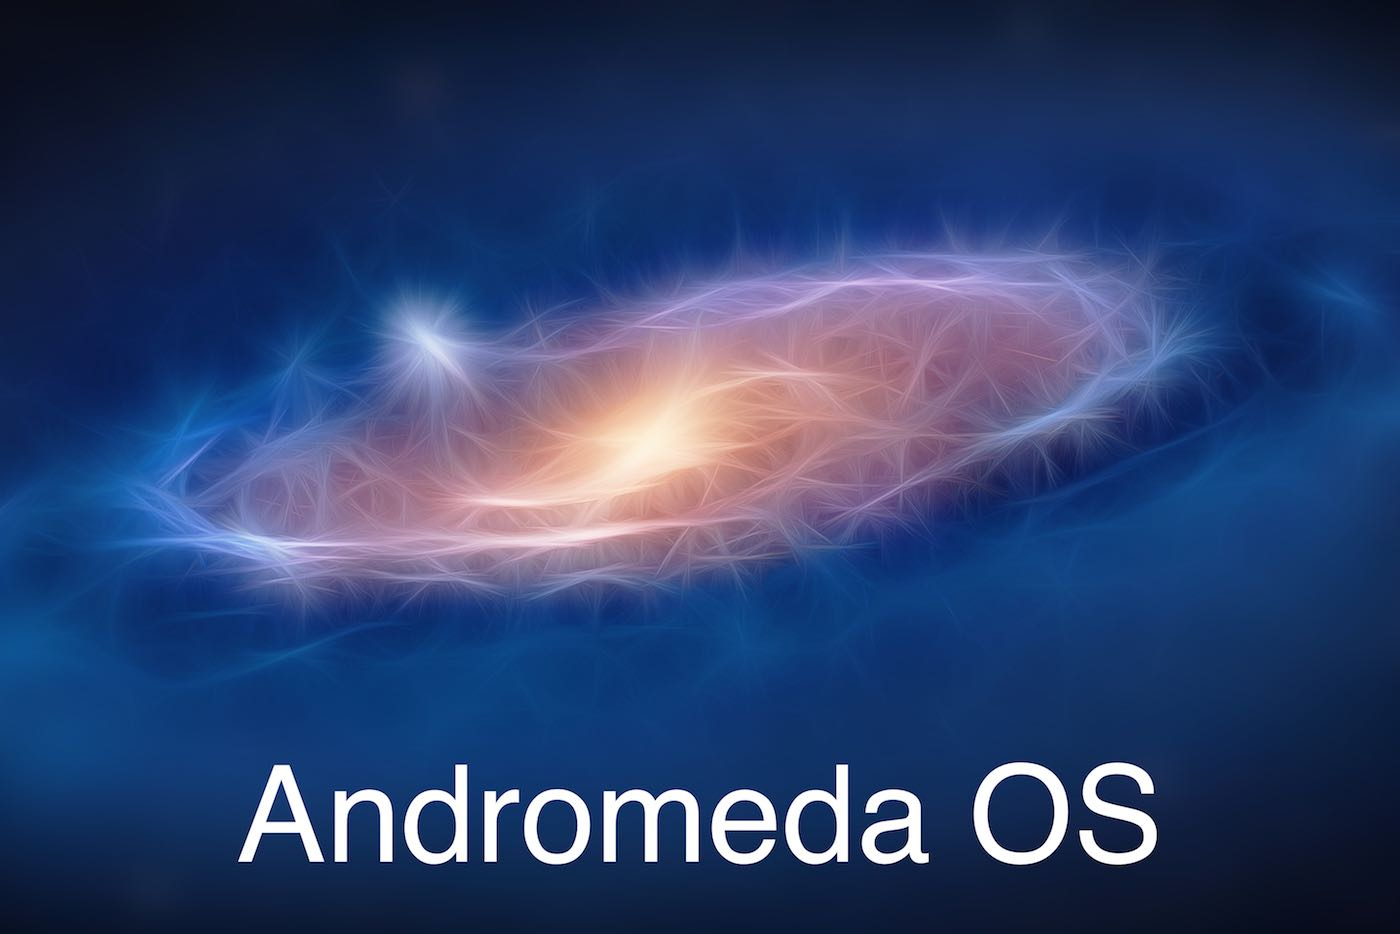 Google Pixel M SmartPhone Andromeda OS Android 8.0 6